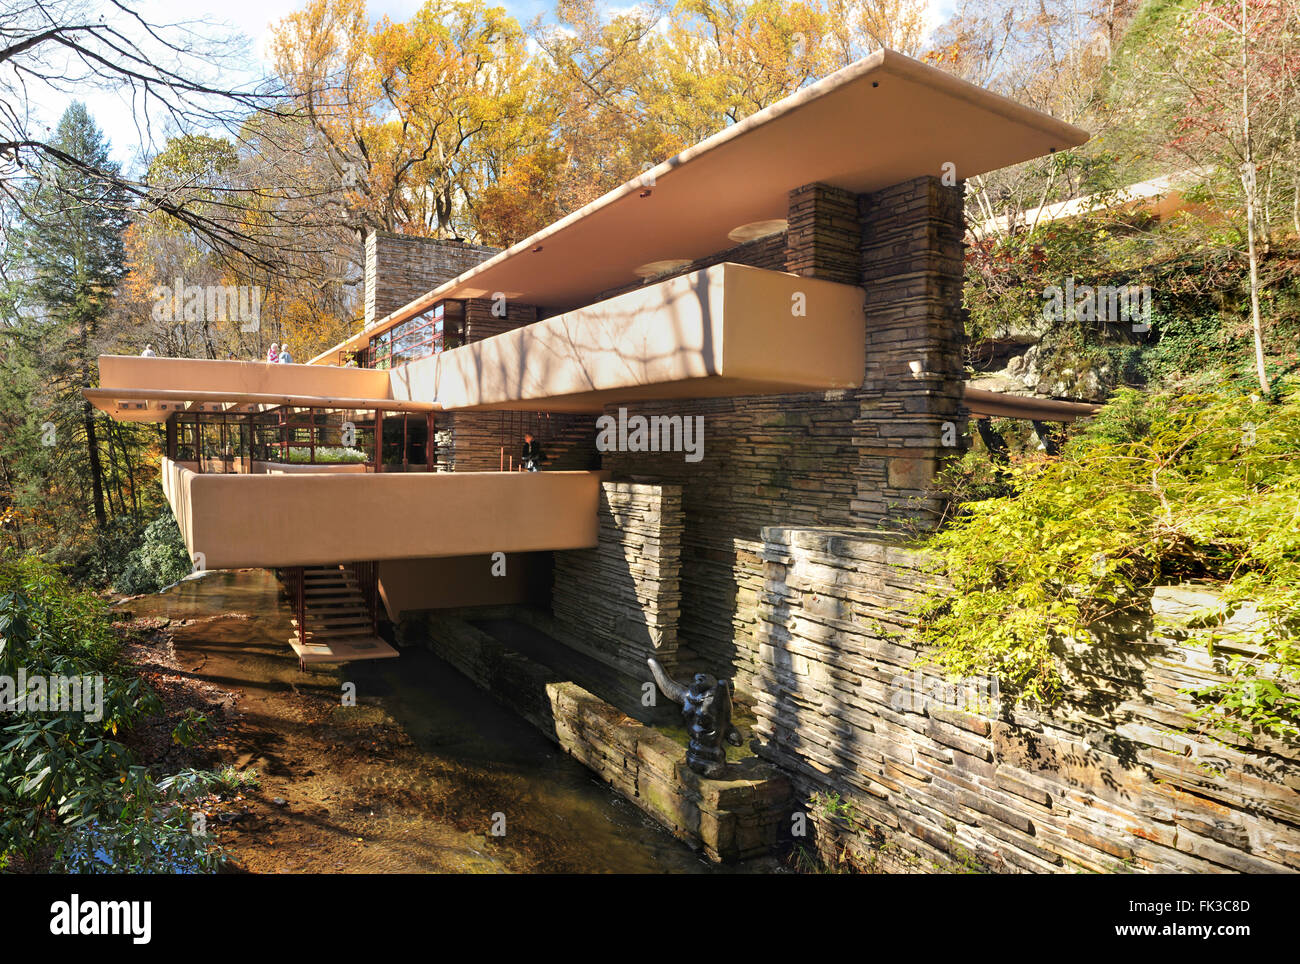 Mill Run, Pennsylvania, USA, Oct. 25: The Fallingwater, designed by Architect Frank Lloyd Wright in Mill Run, PA - Stock Image